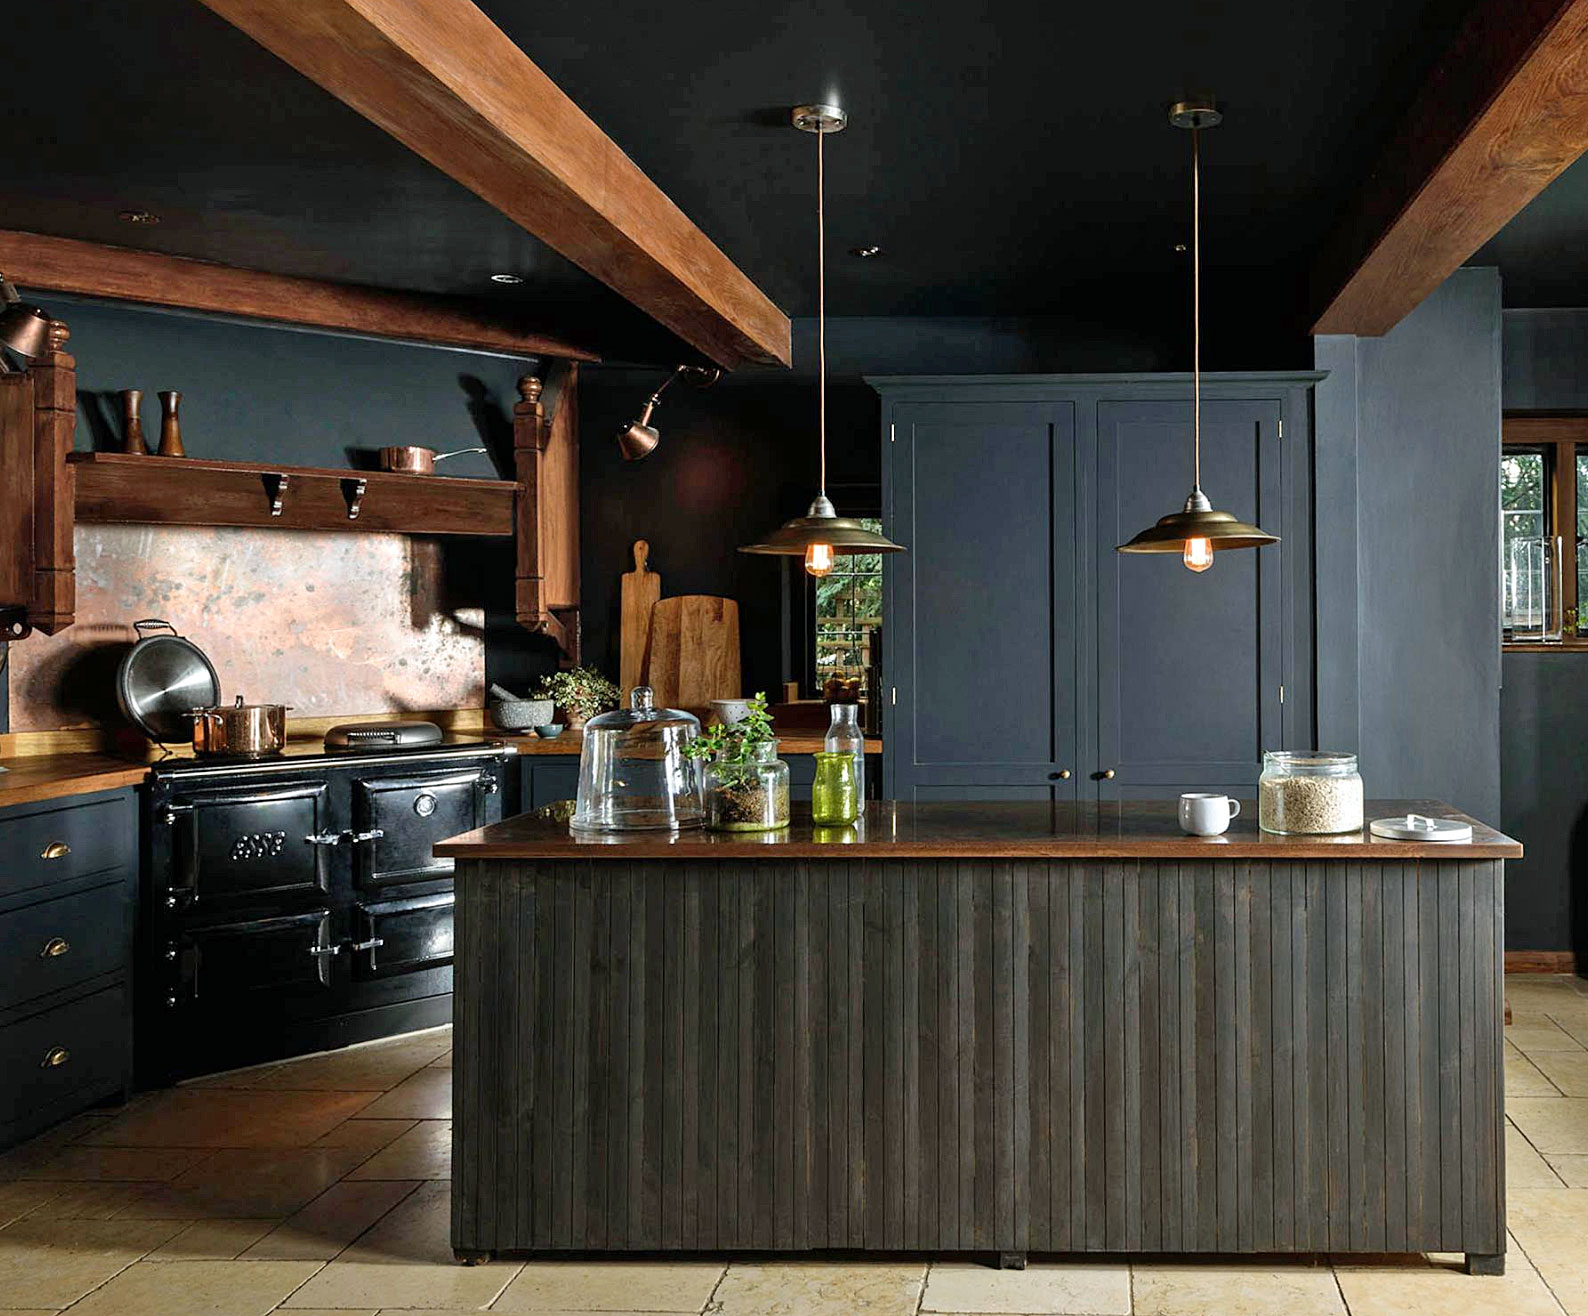 5 New Rustic Kitchen Ideas That Prove Country Can Be More Than Cute Country